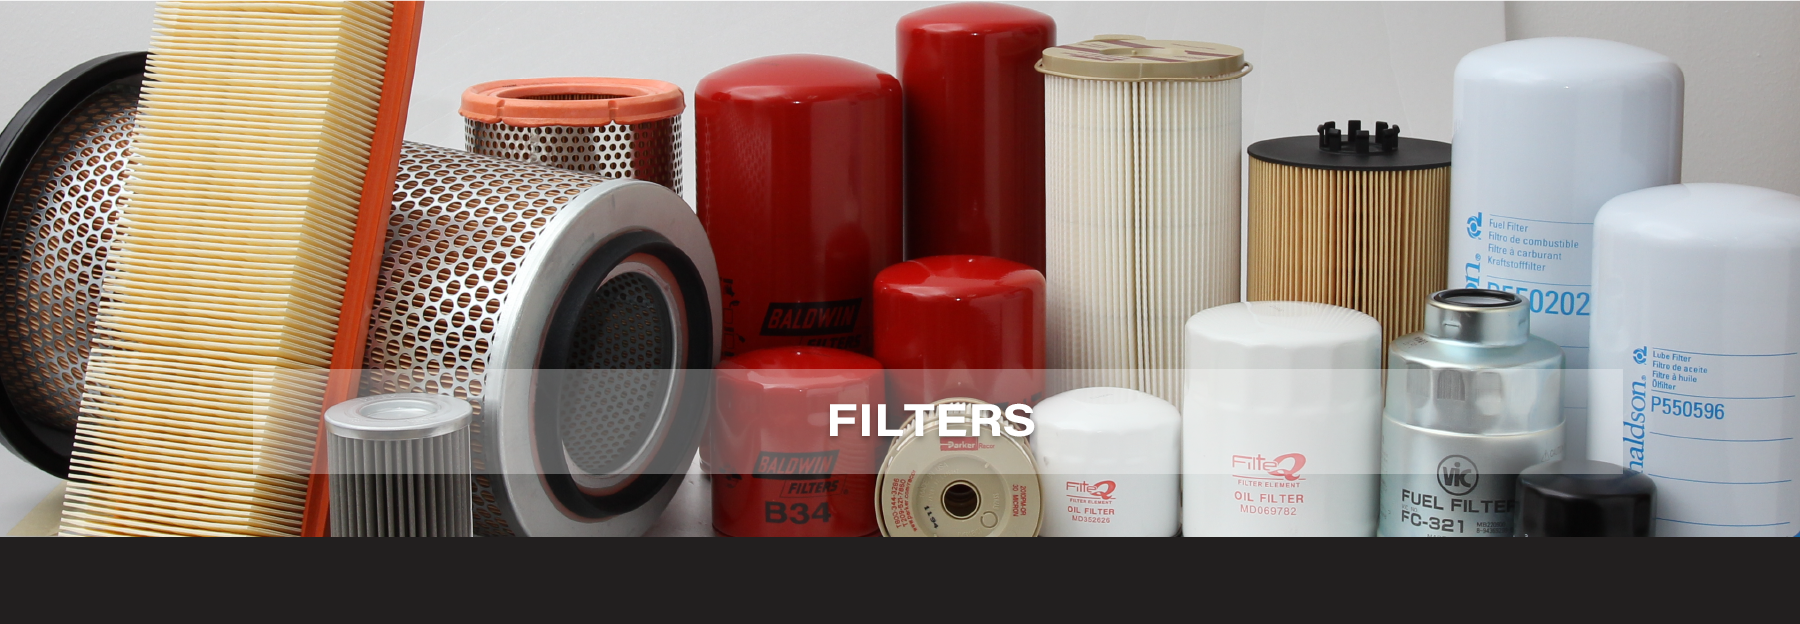 Filtec Private Limited Products Filters Fuel Water Separator Duplex Filter Mann Hummel Separ